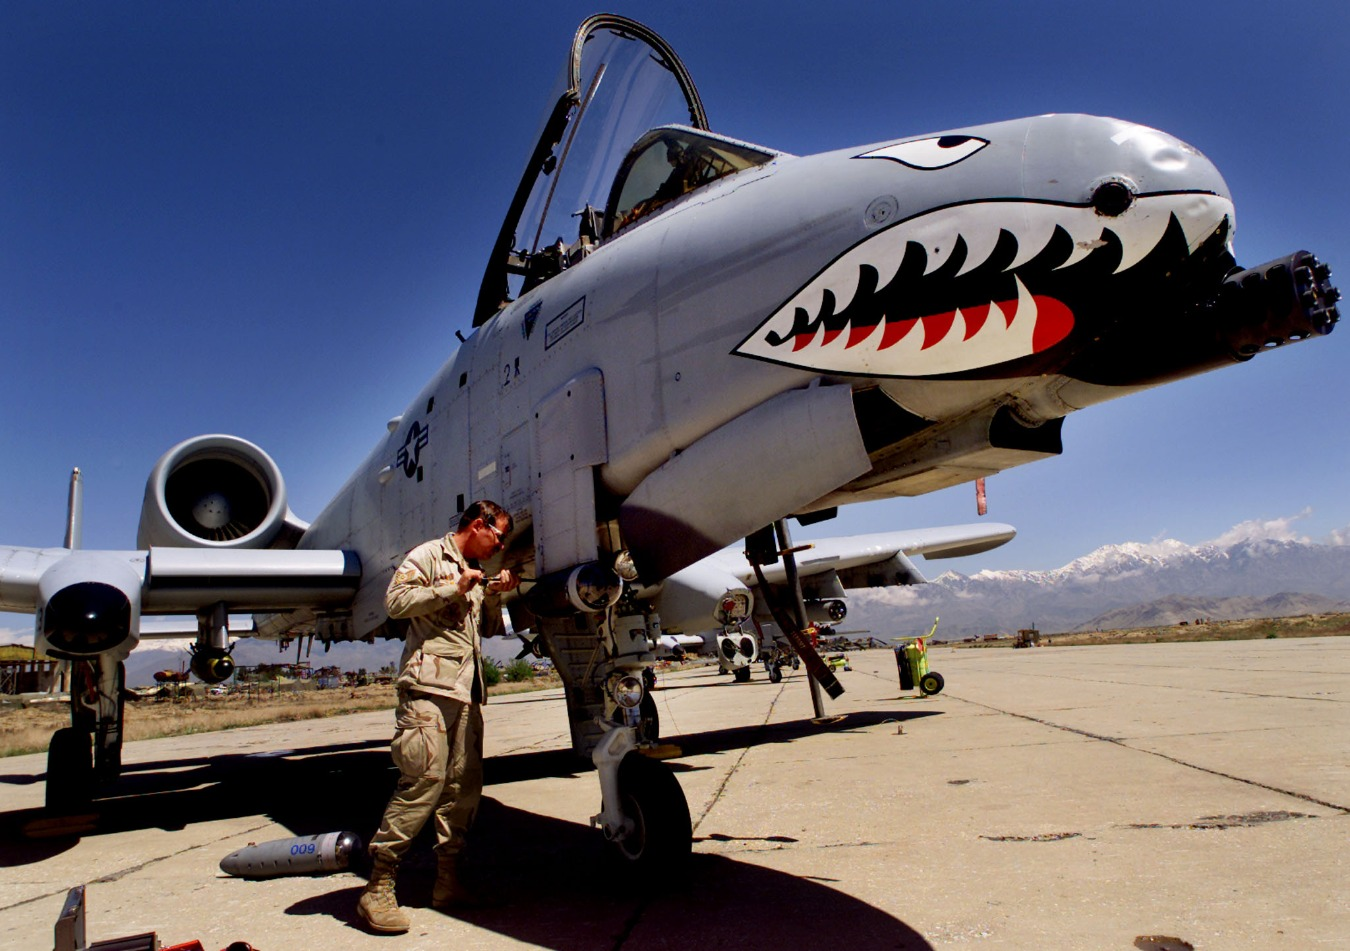 No One Can Kill The A-10 Warthog, Not Even The U.S. Military